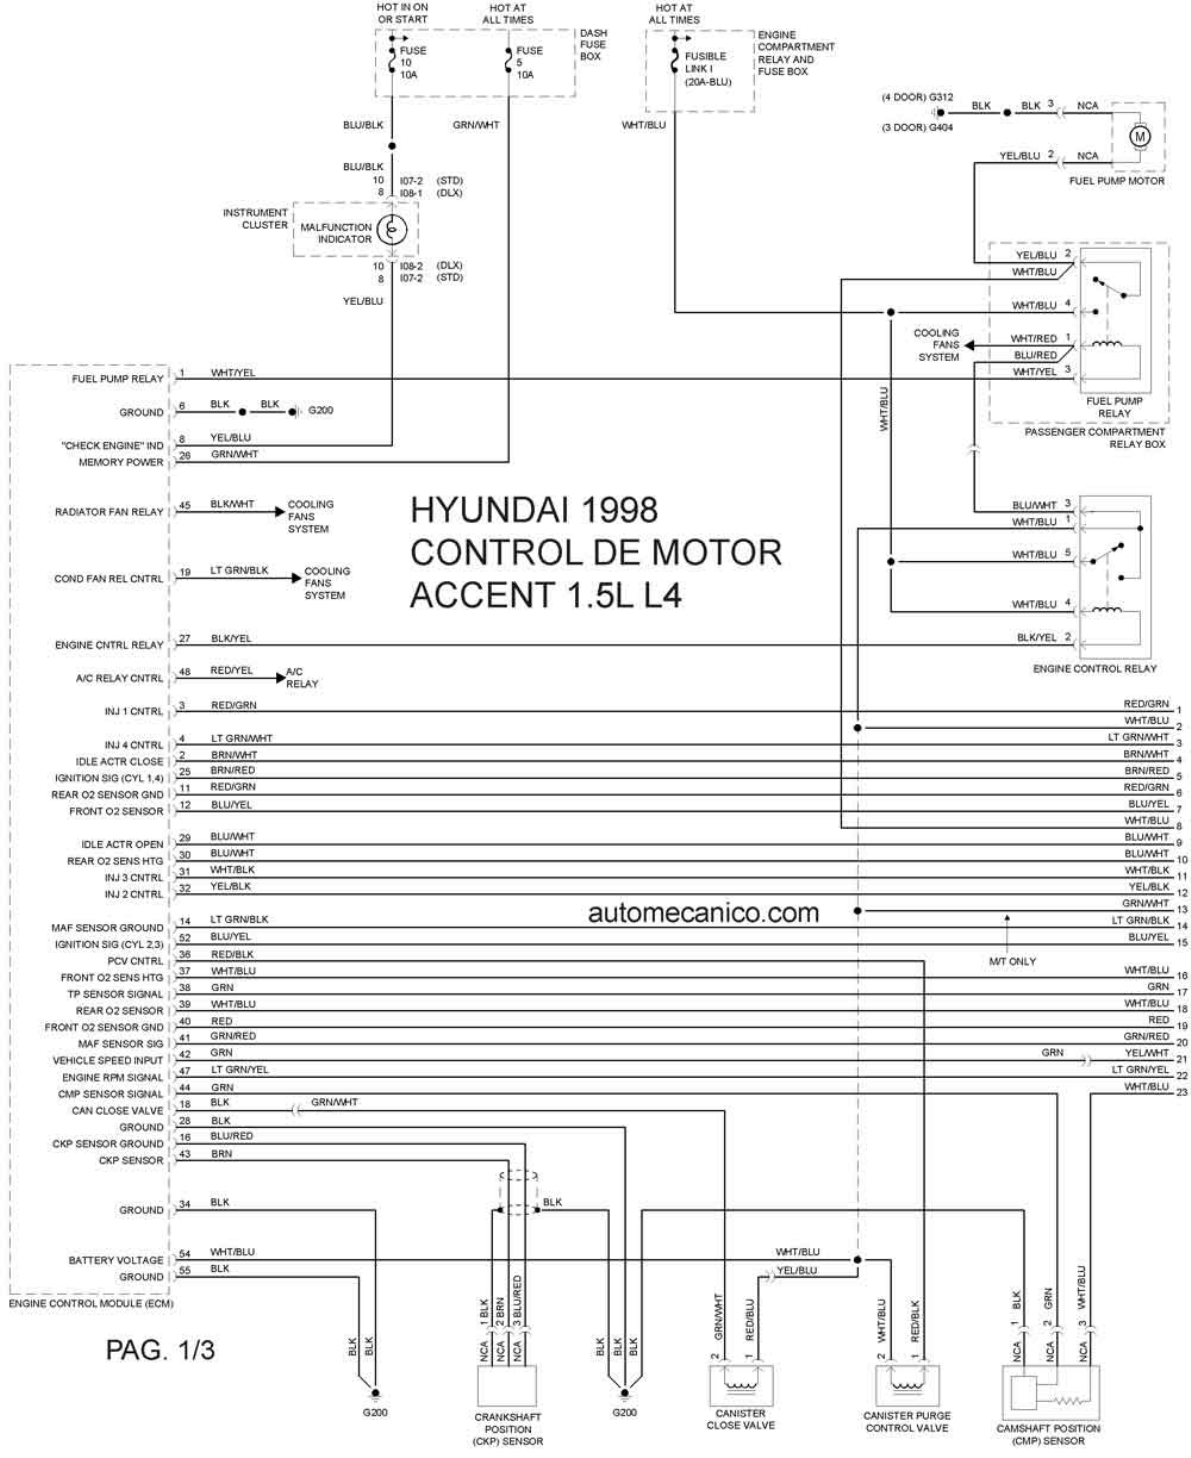 hyundai excel wiring diagram radio hyundai excel wiring diagram 1998 hyundai accent 1998 misc document wiring diagram pdf